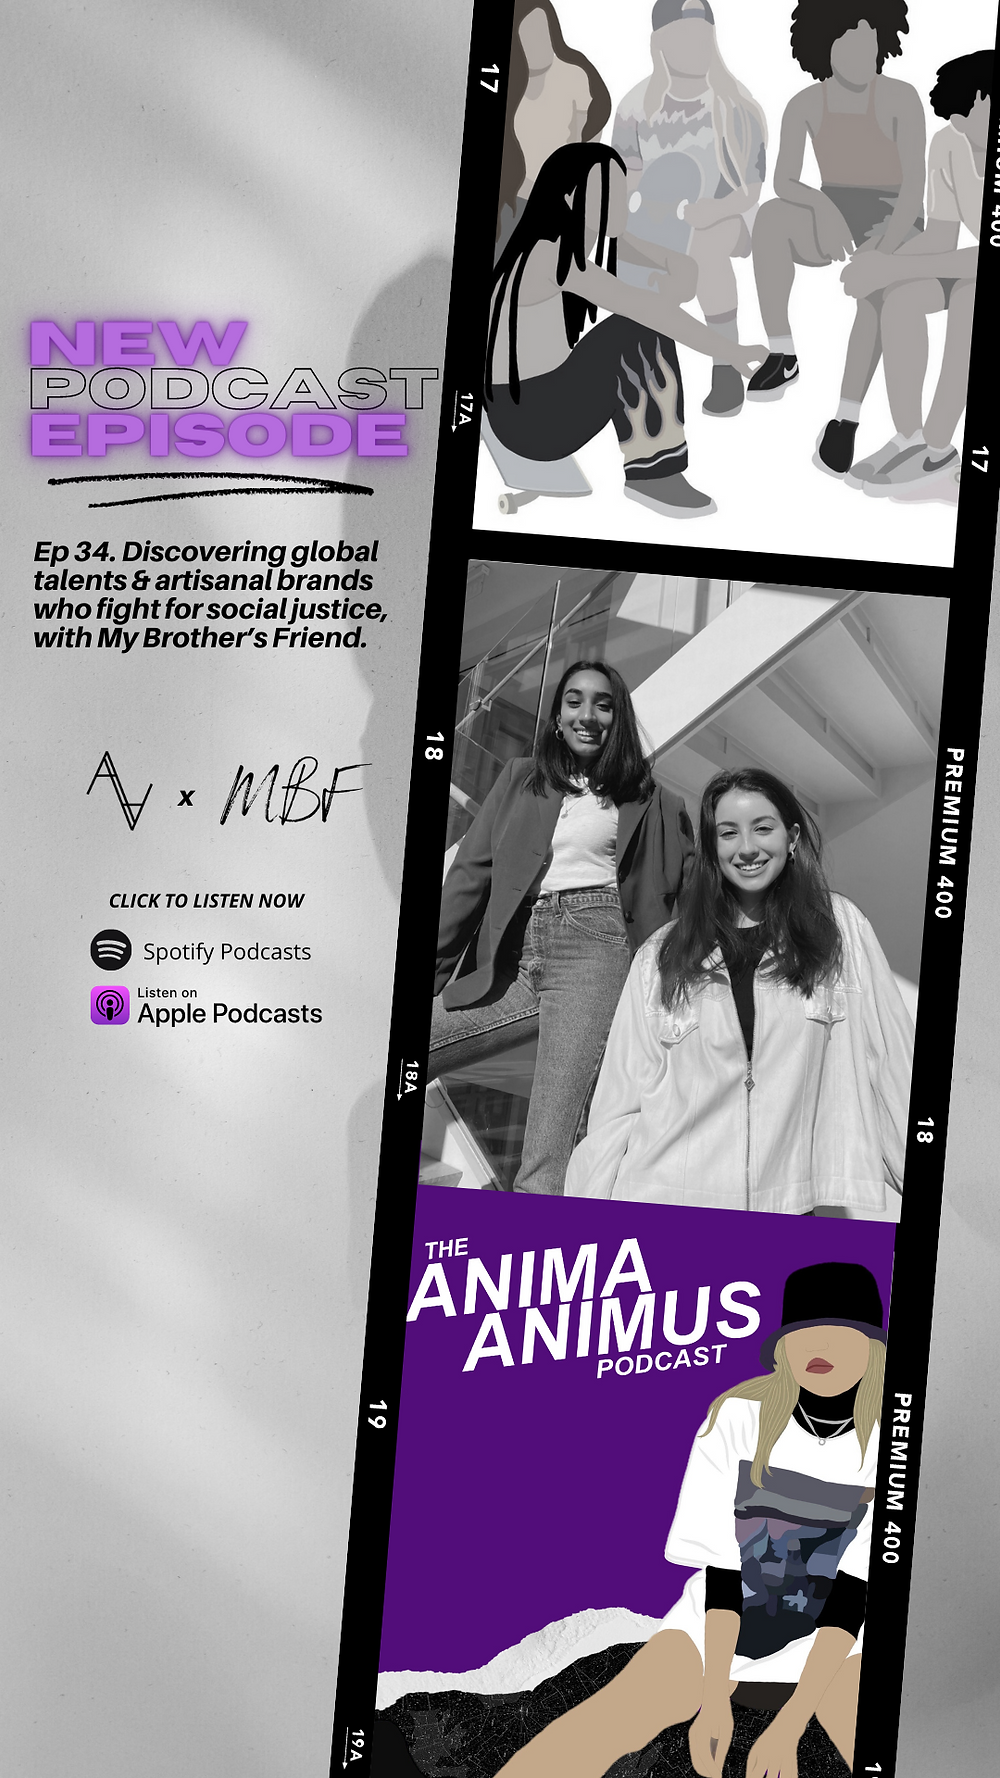 A fashion podcast by The ANIMA ANIMUS Podcast, hosted by Chelsea, featuring Nisha Momin and Sofia Yepes from My Brother's Friend Podcast.